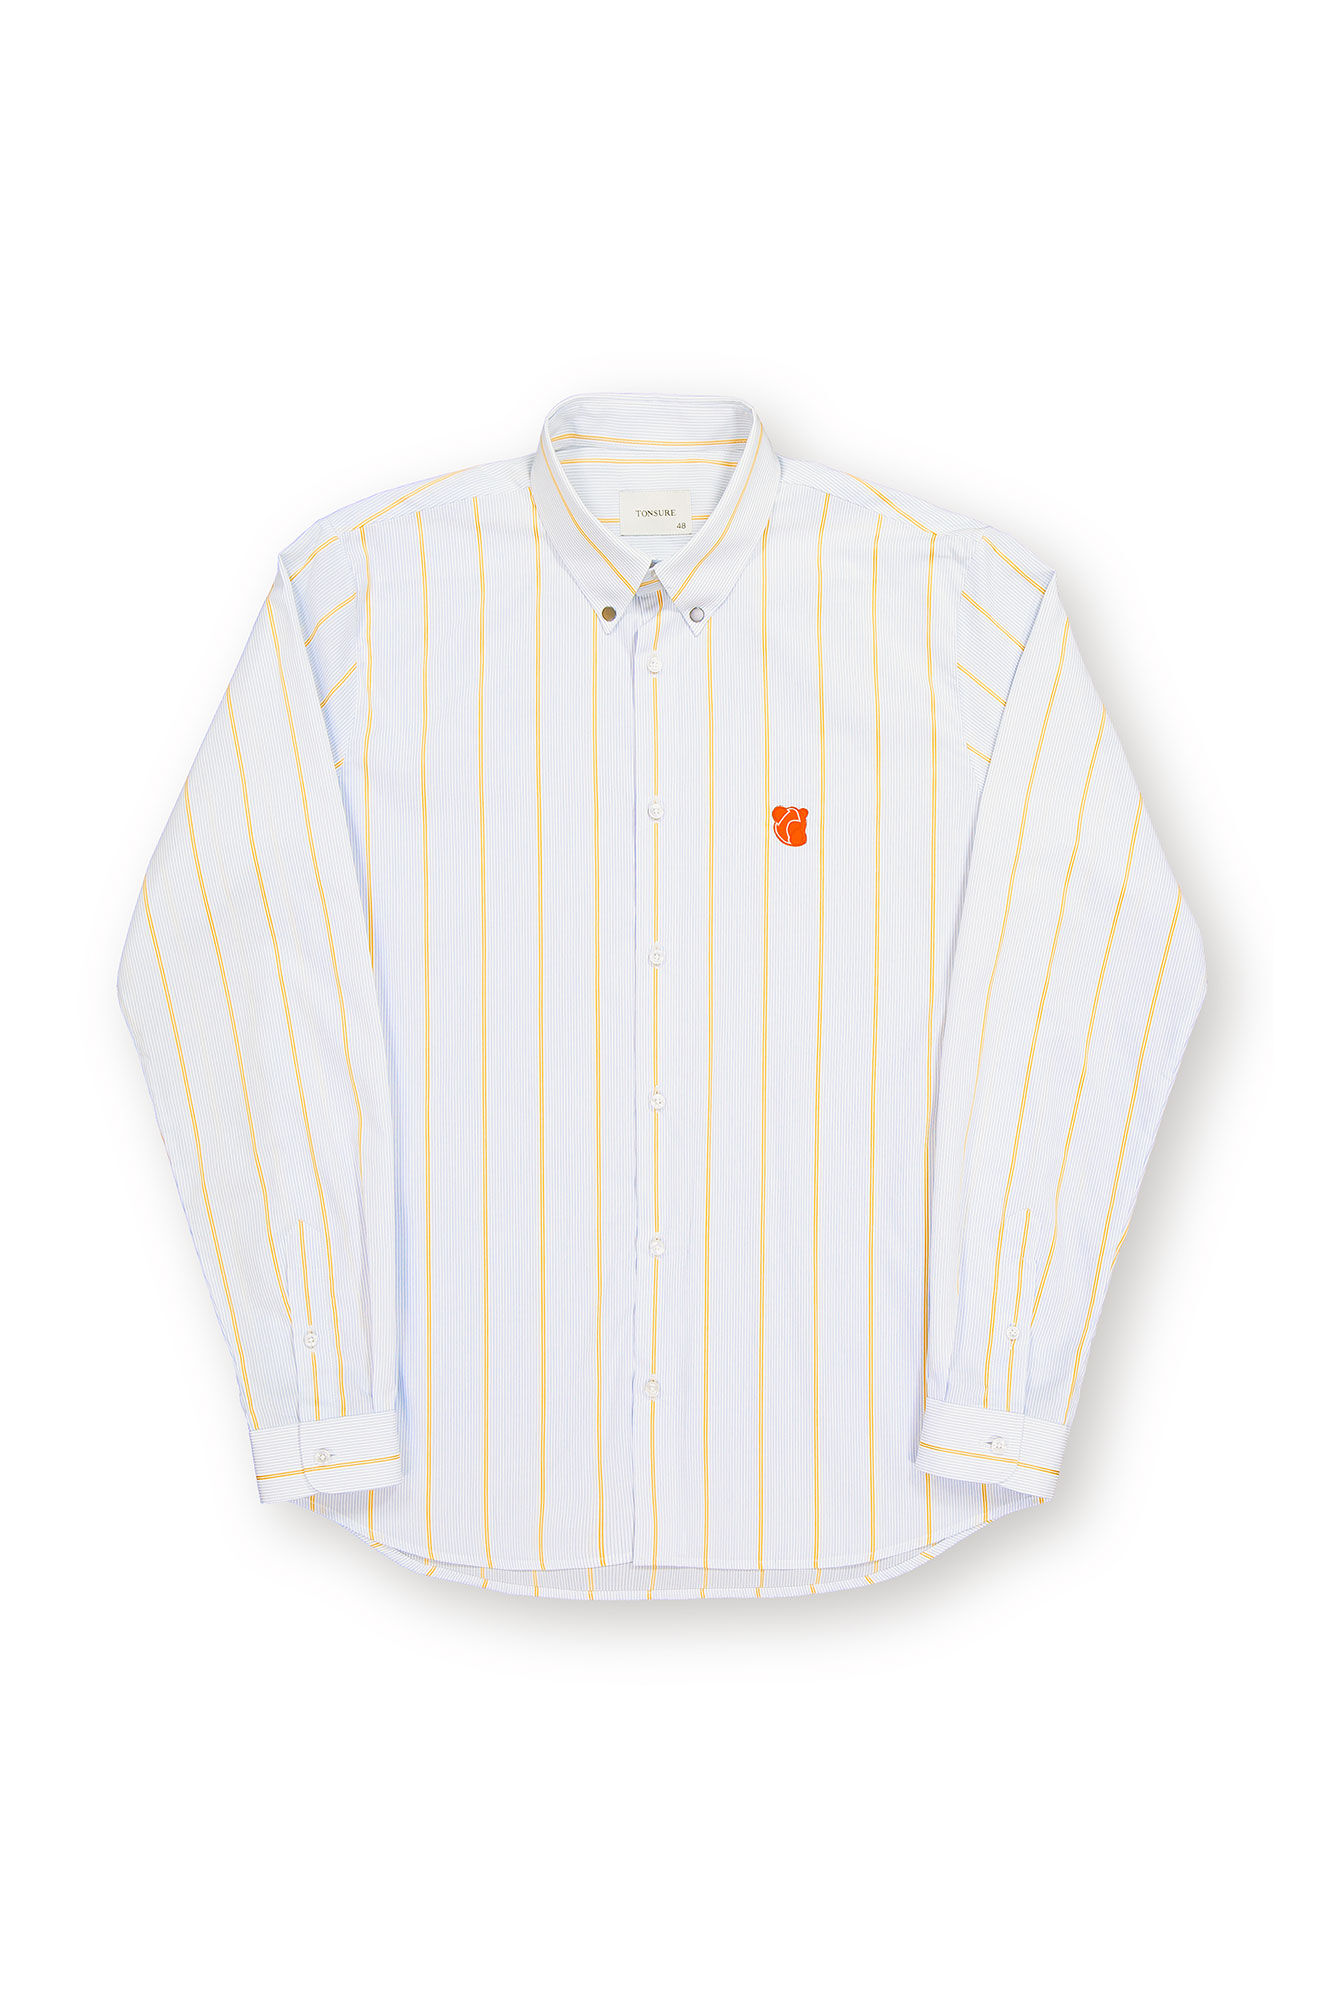 Charles T.09.032.CO.PSTR, YELLOW/BLUE PINSTRIPE